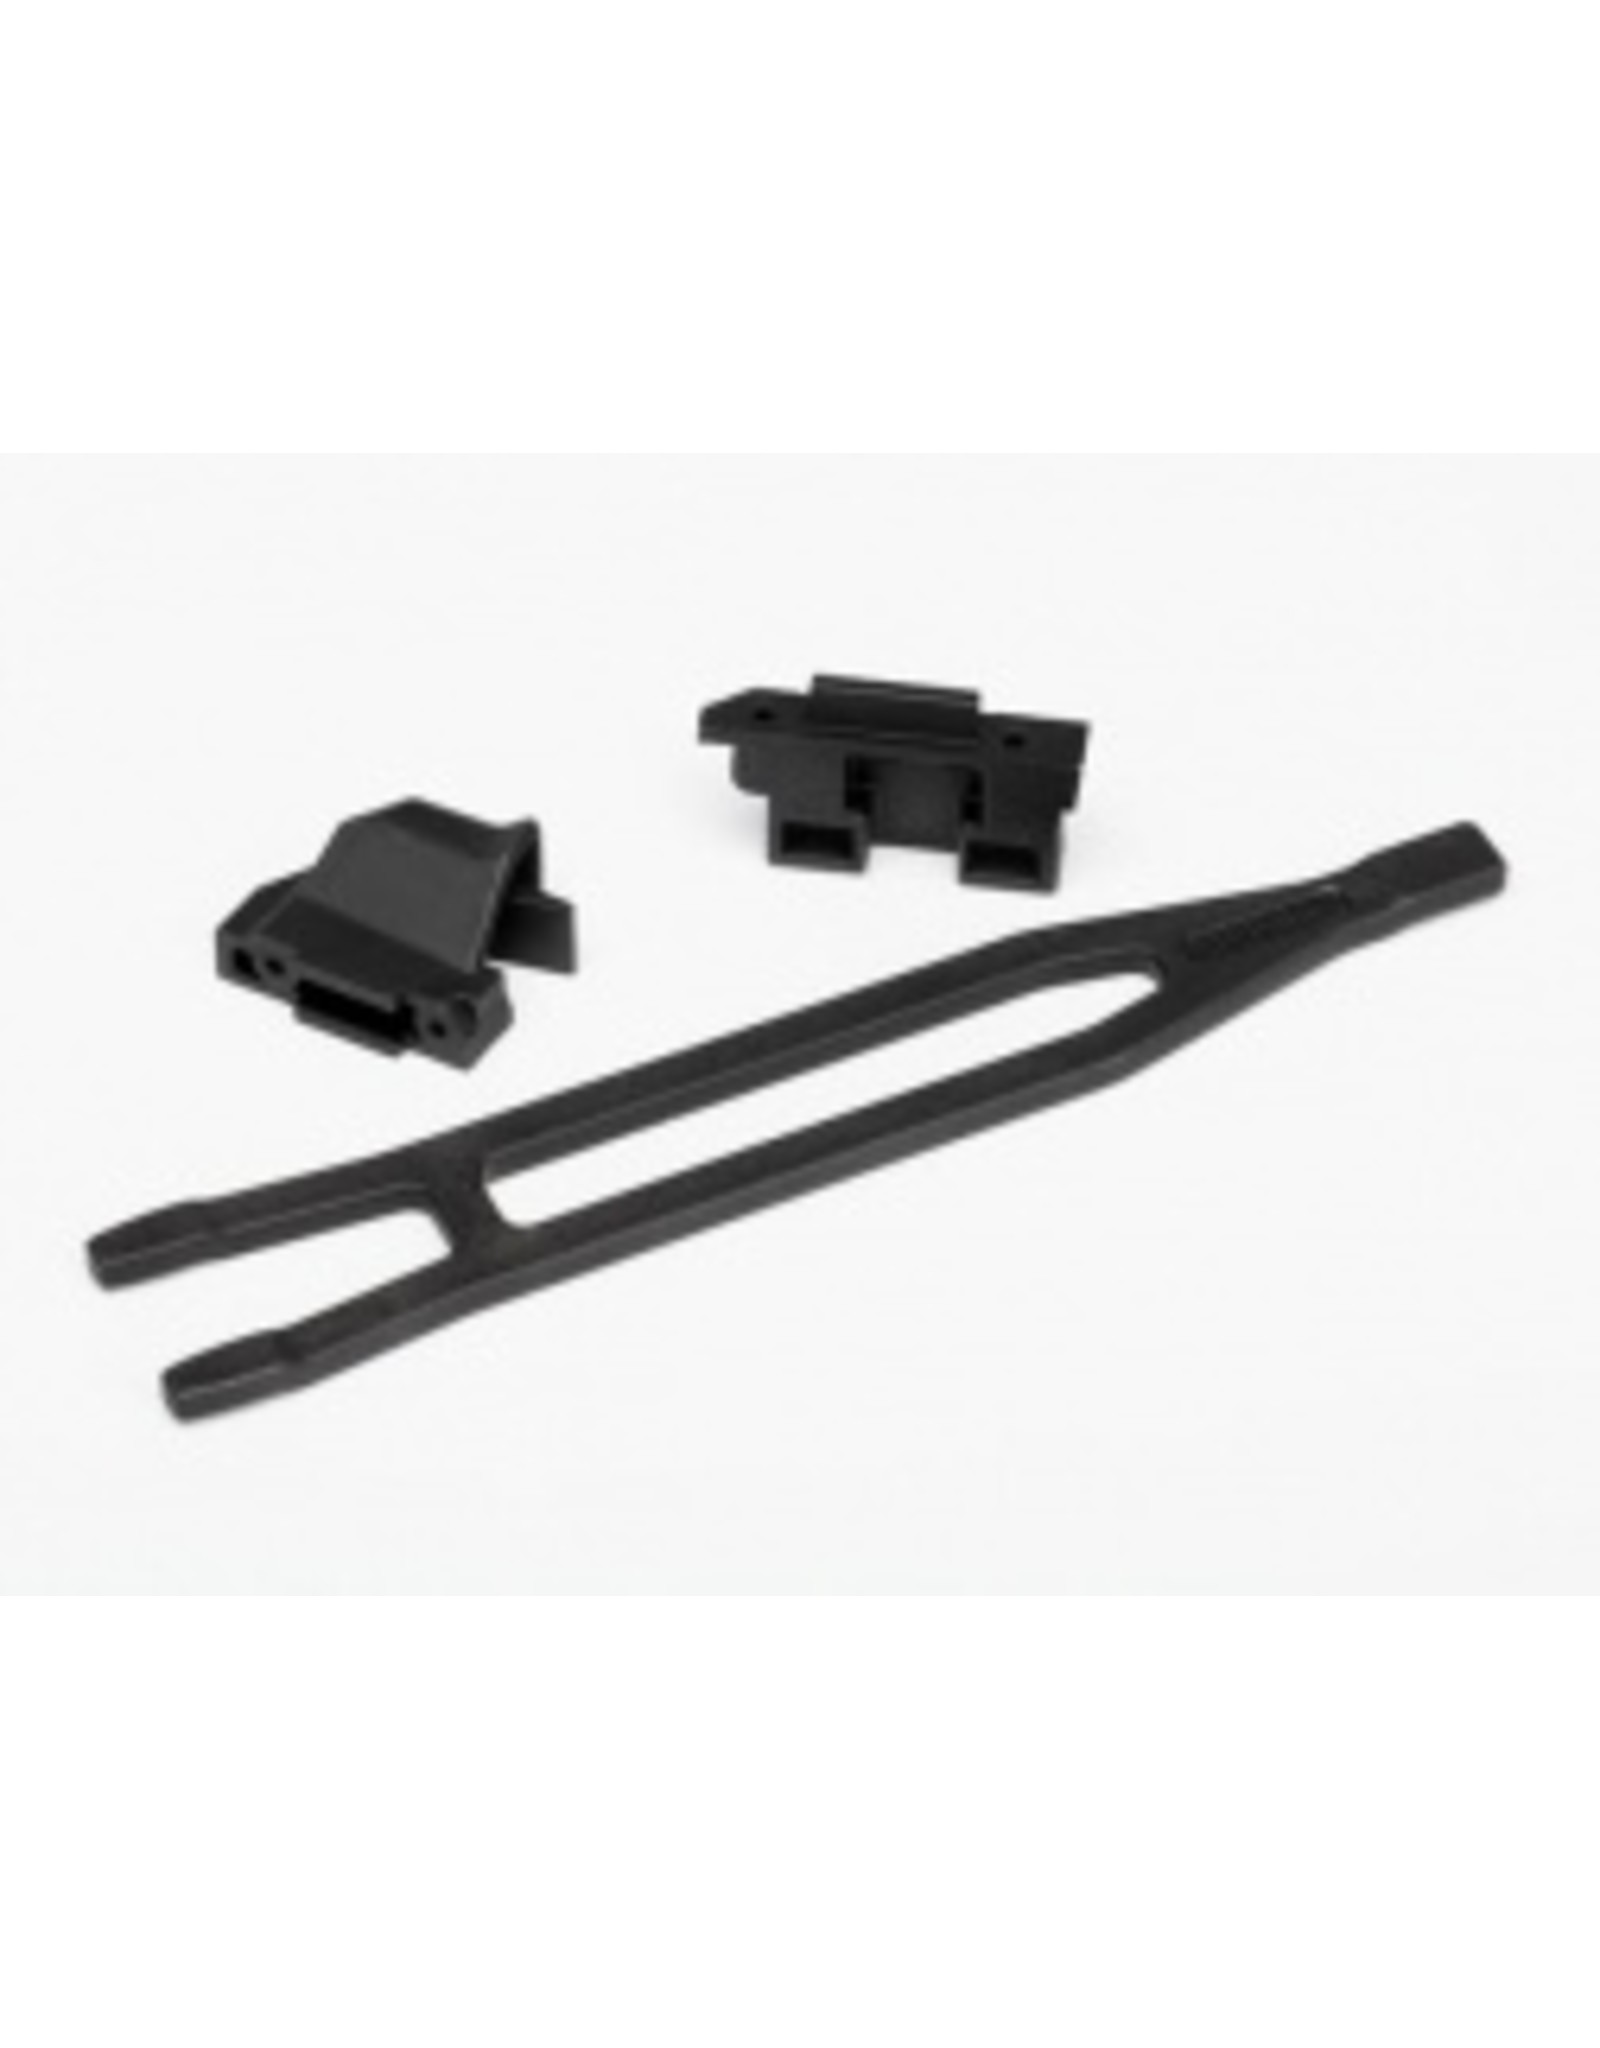 Traxxas Battery hold-down (1)/ hold-down retainer, front & rear (1 each) - Slash 4x4 / Rally - Low CG (7426)